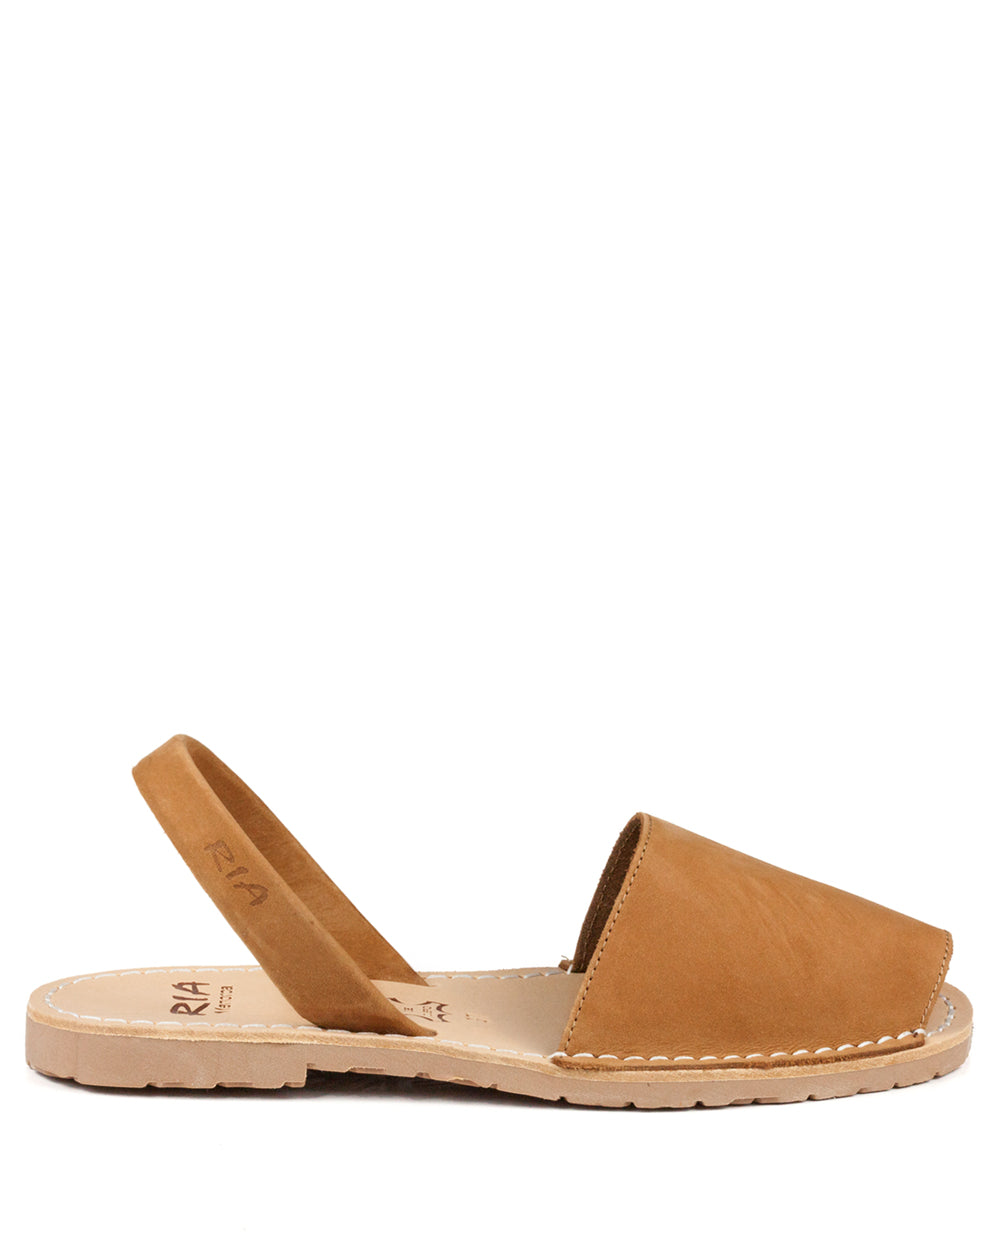 Menorcan Sandals Tan Nubuck - The Espadrille Hut